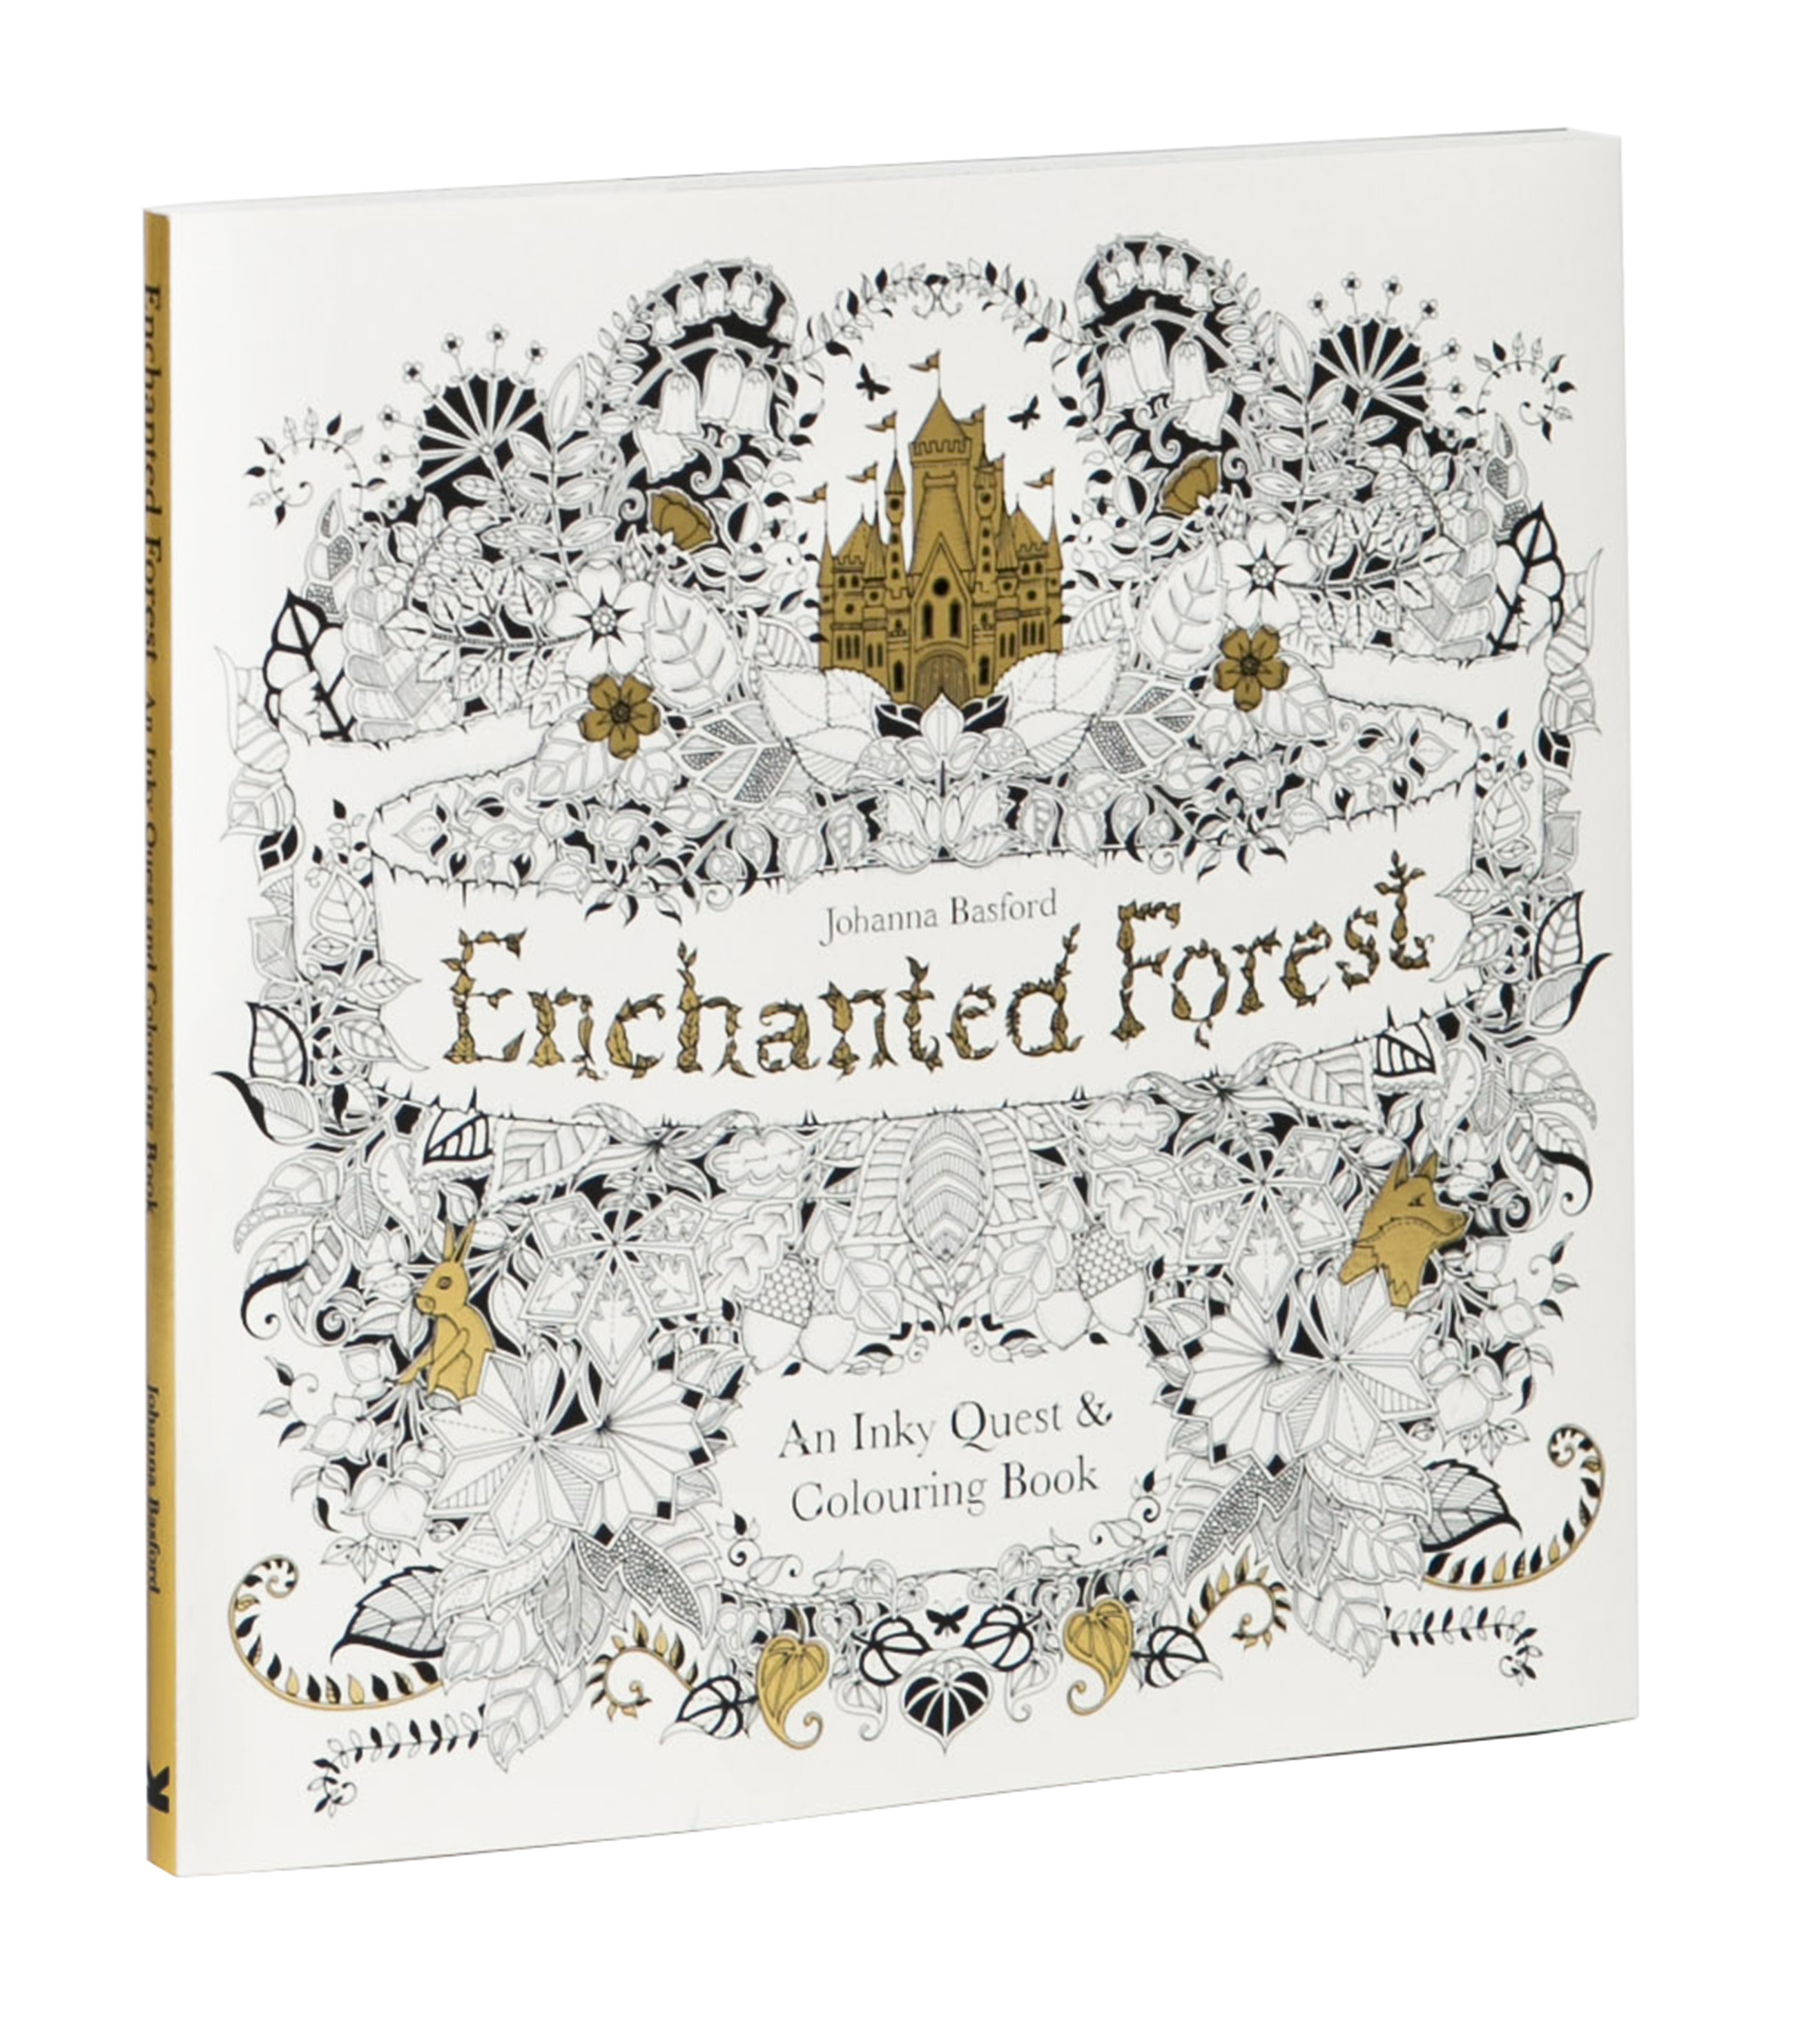 Enchanted Forest Is Illustrator Johanna Basfords Trending Colouring Book For